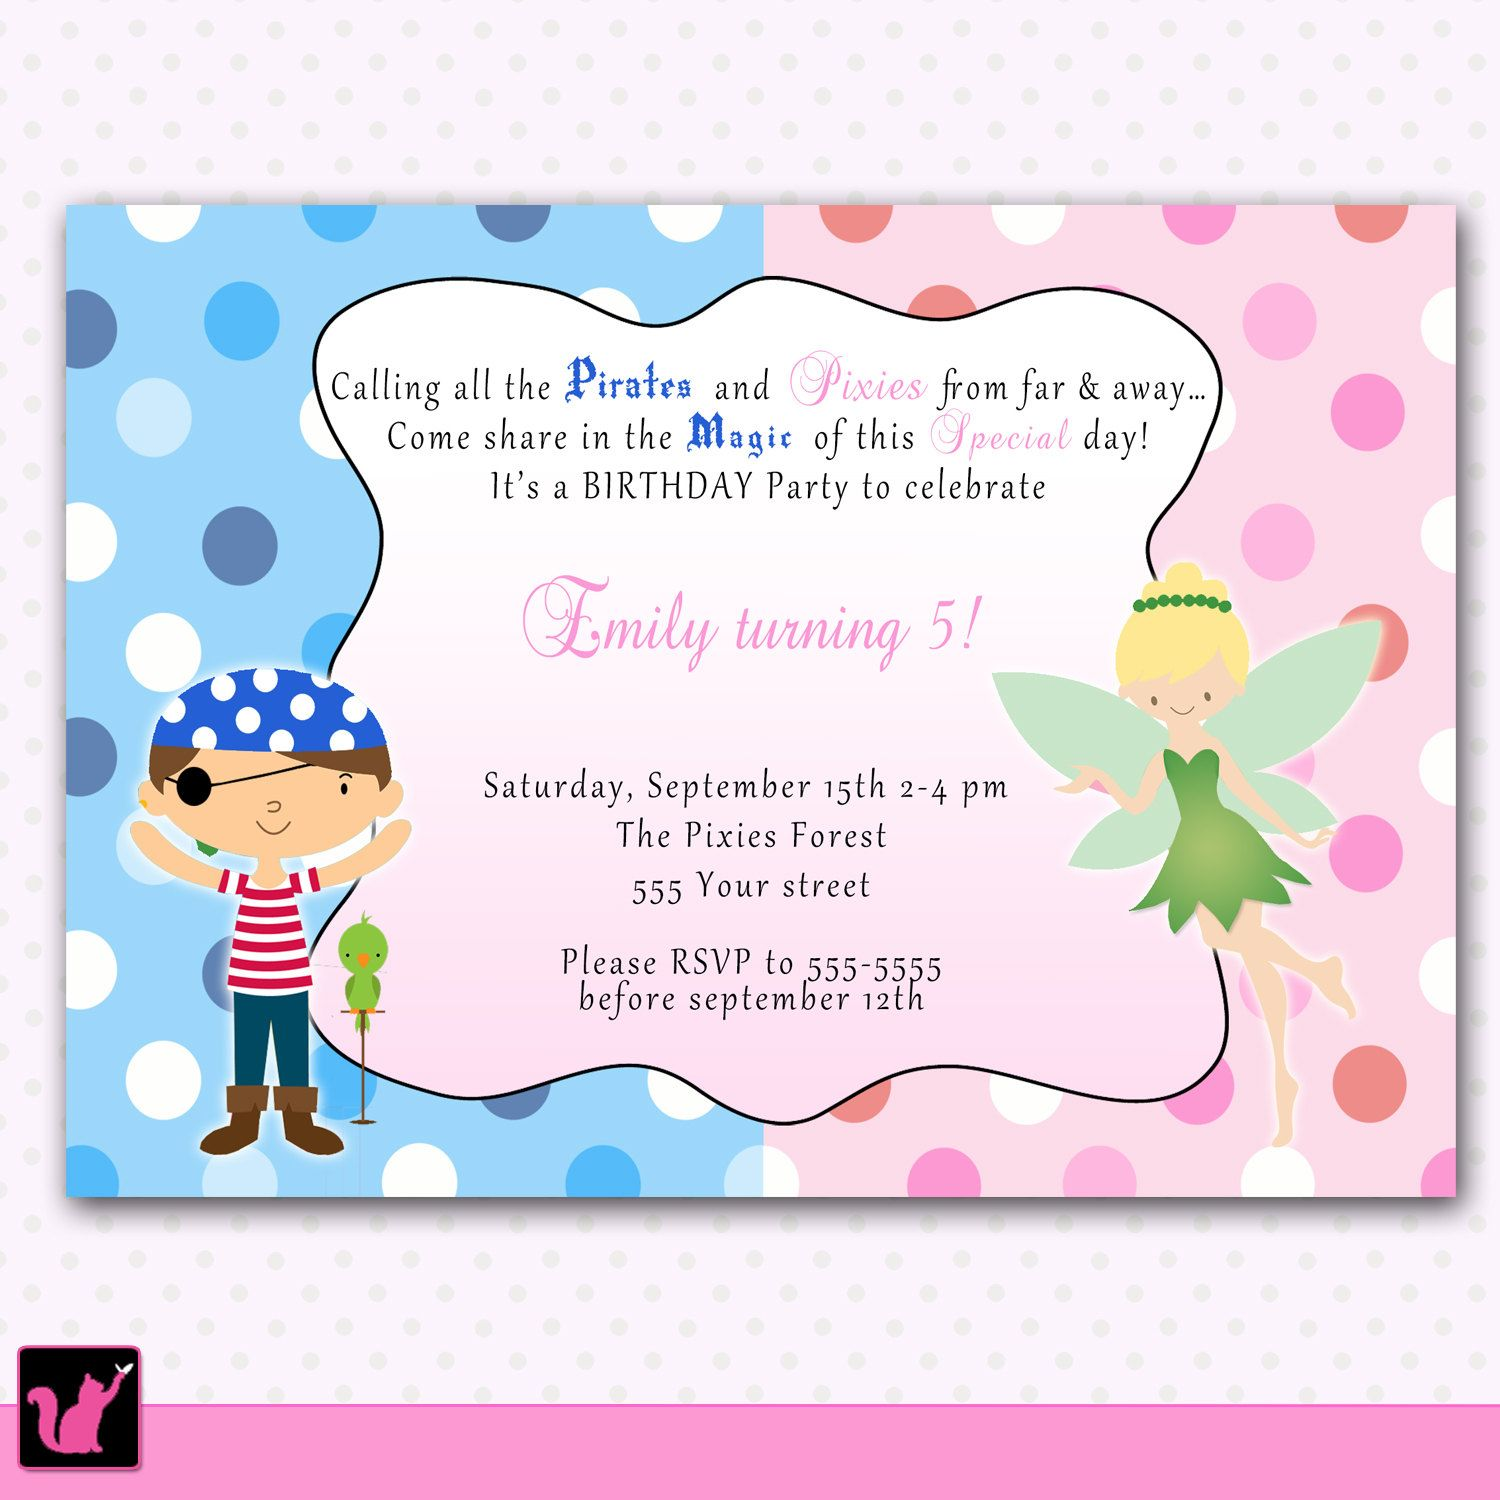 pirate fairy birthday invitation personalized card kids party printable personalized pirate fairy pixie princess girl boy birthday party invitation card costume brother sister